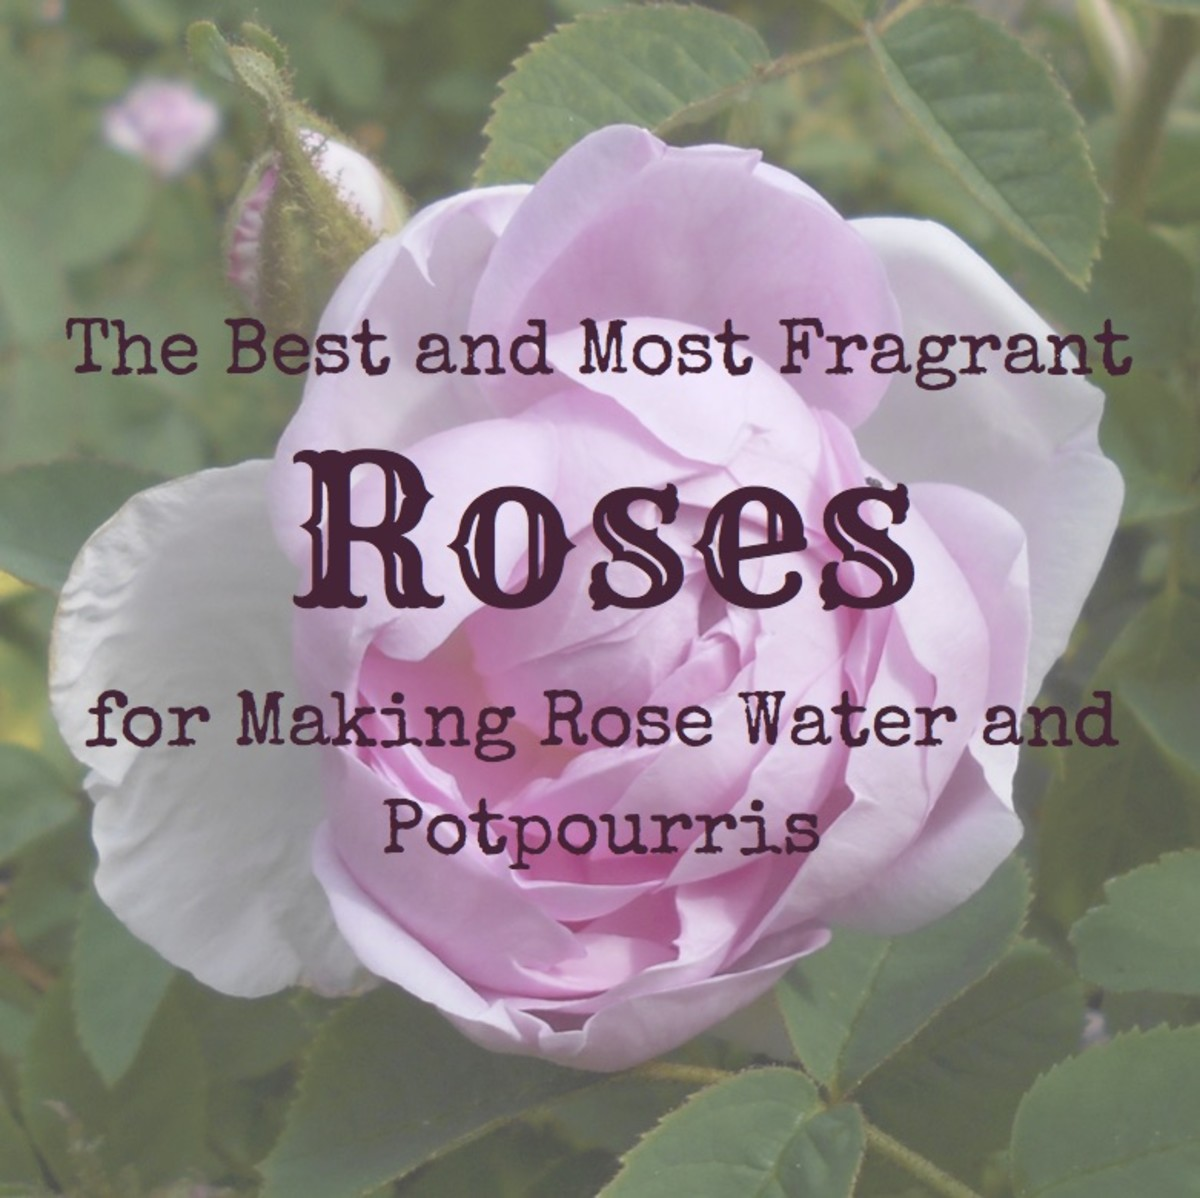 The Best and Most Fragrant Roses for Making Rose Water and Potpourris